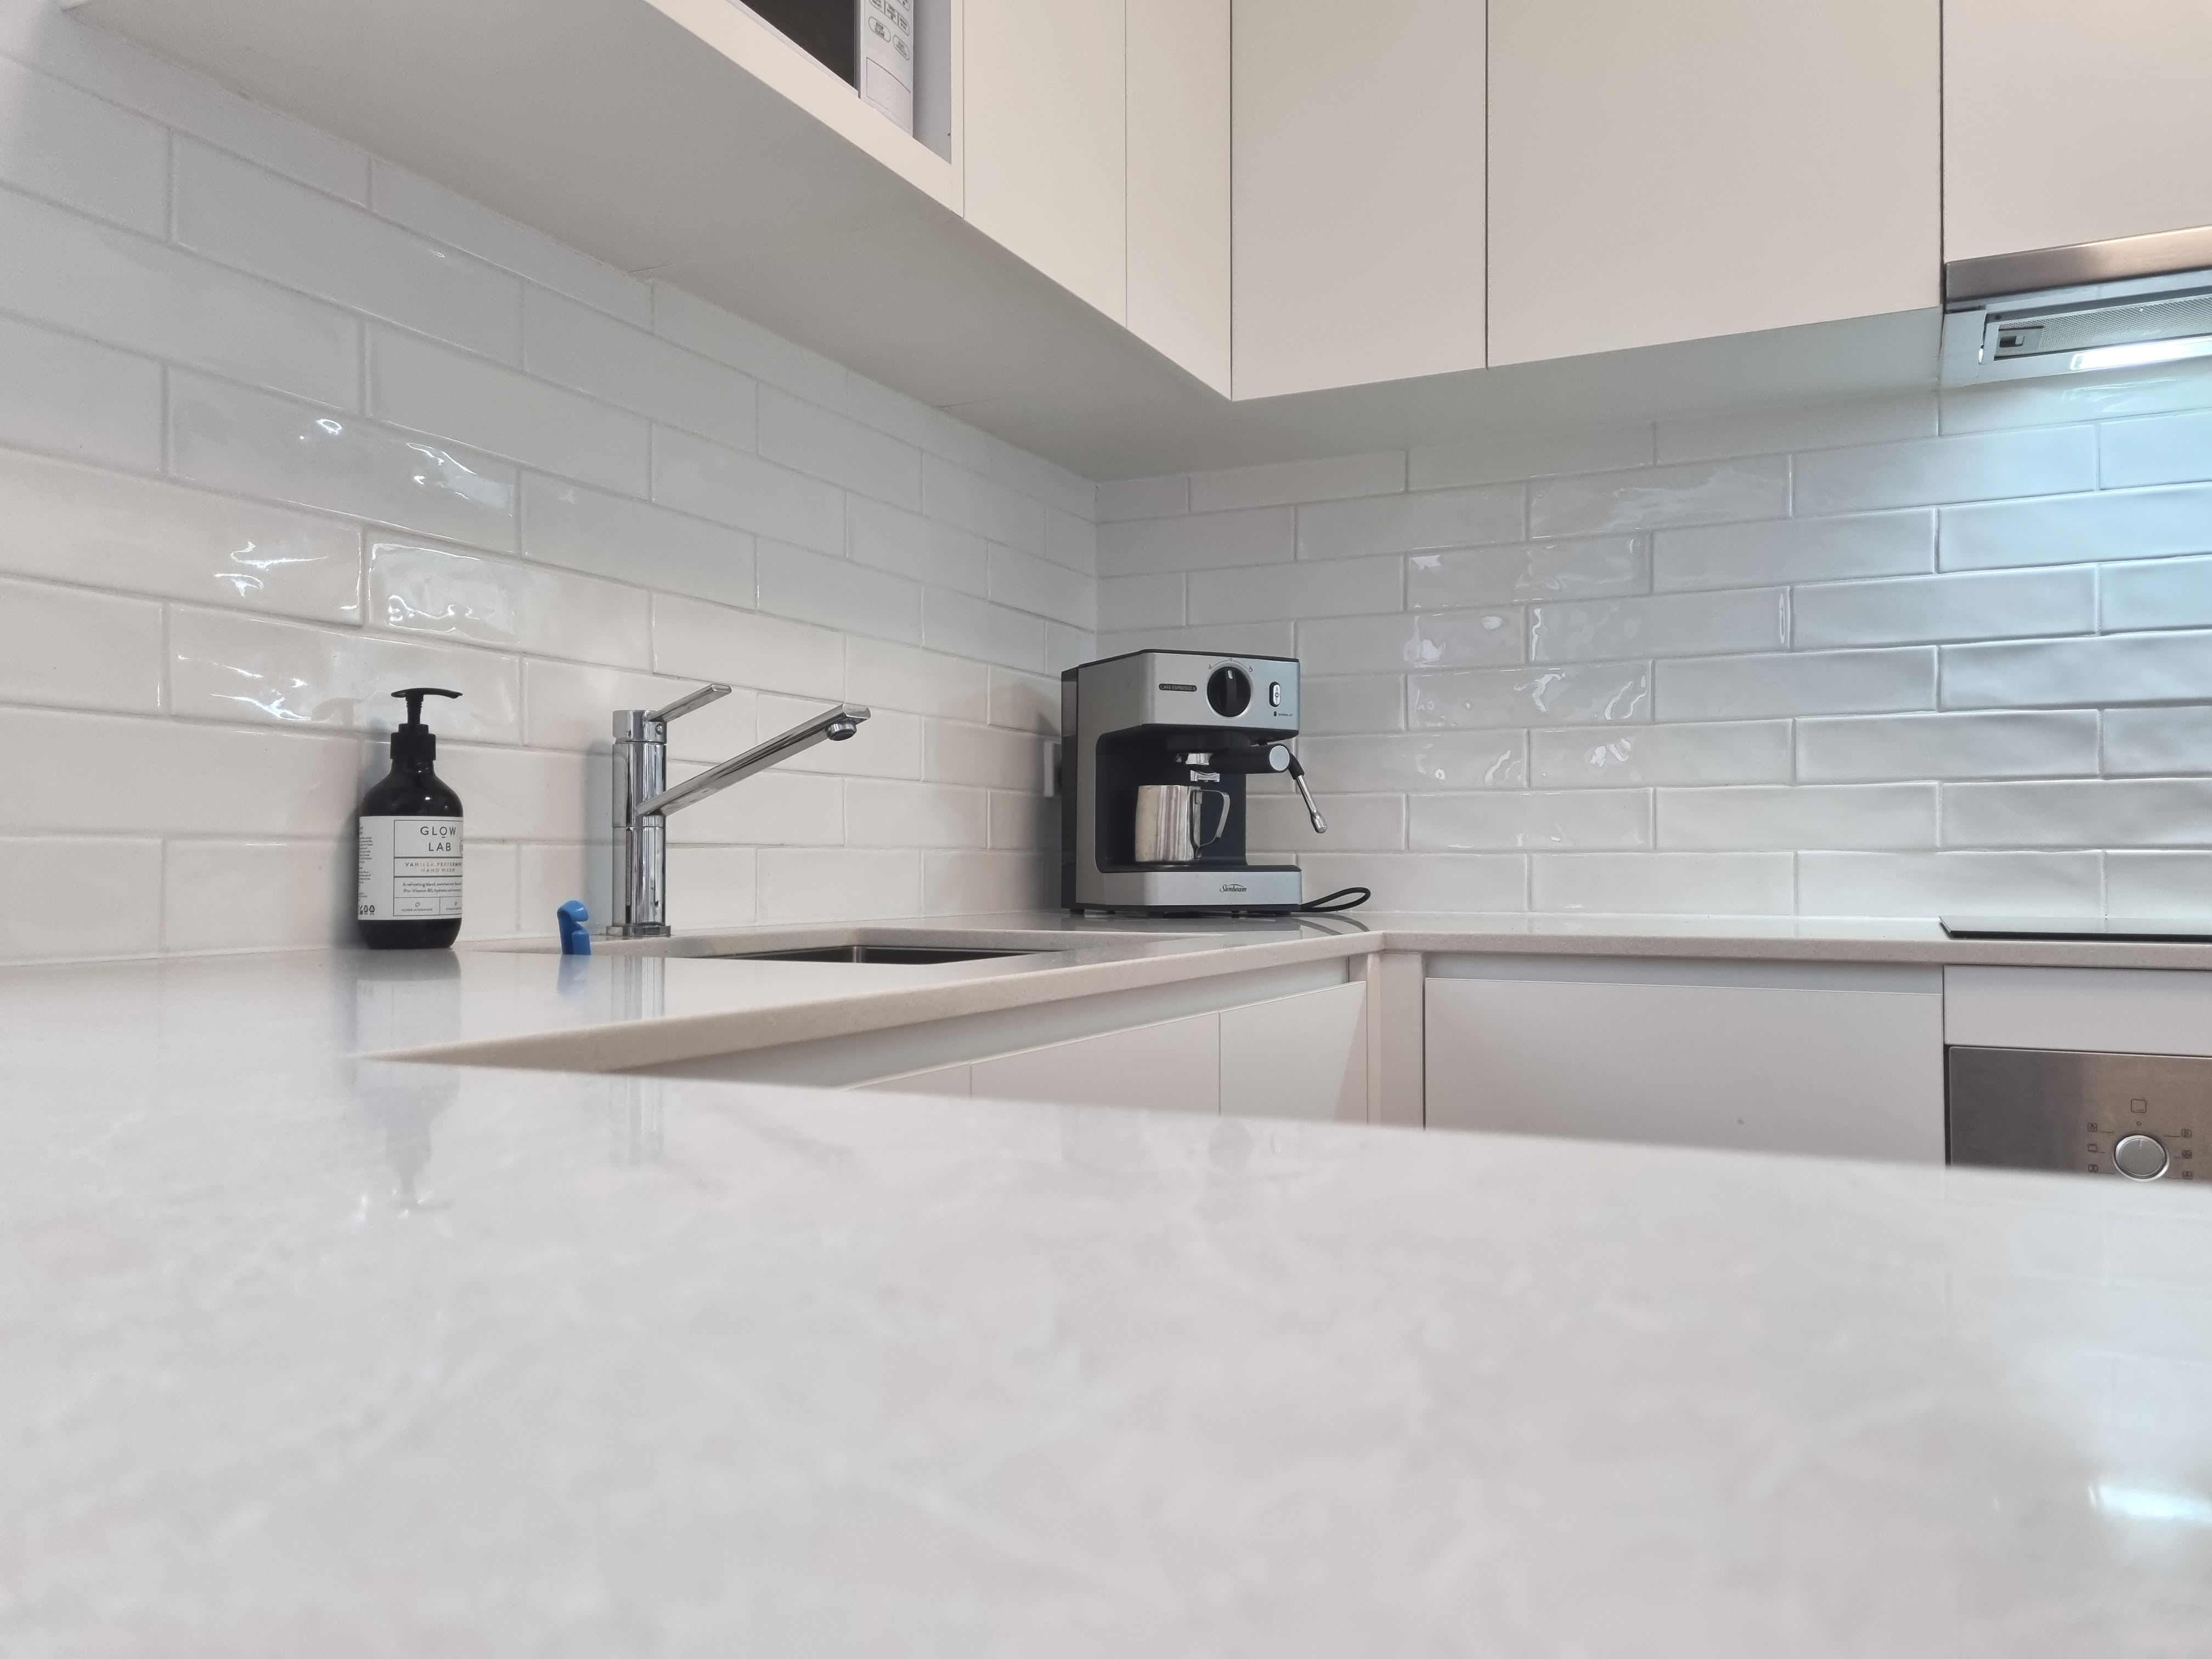 BrisbaneKitchenDesign St Lucia Contemporary Kitchen Laminate Flat Panel Doors with Caesarstone Cosmopolitan White Benchtops and Integrated Handles